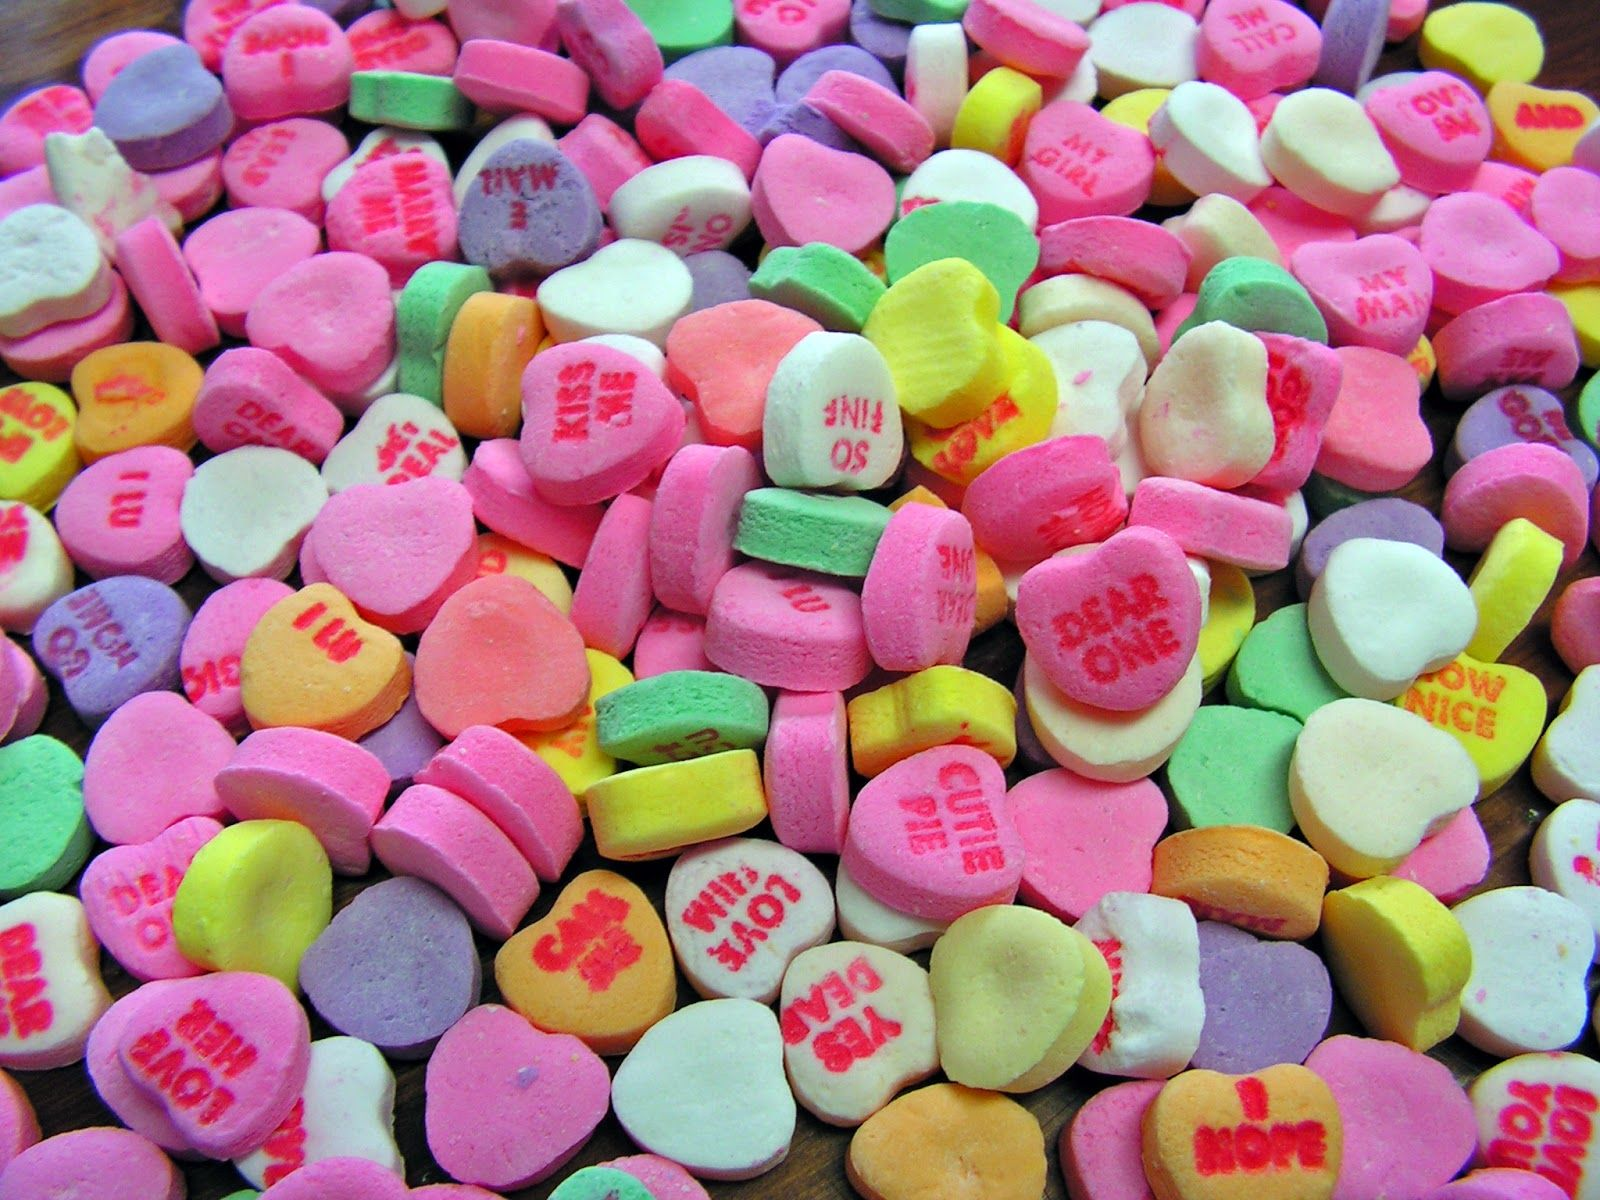 Valentines Day Candy Hearts Wallpaper Valentines Candy Crafts Candy Crafts Valentine Candy